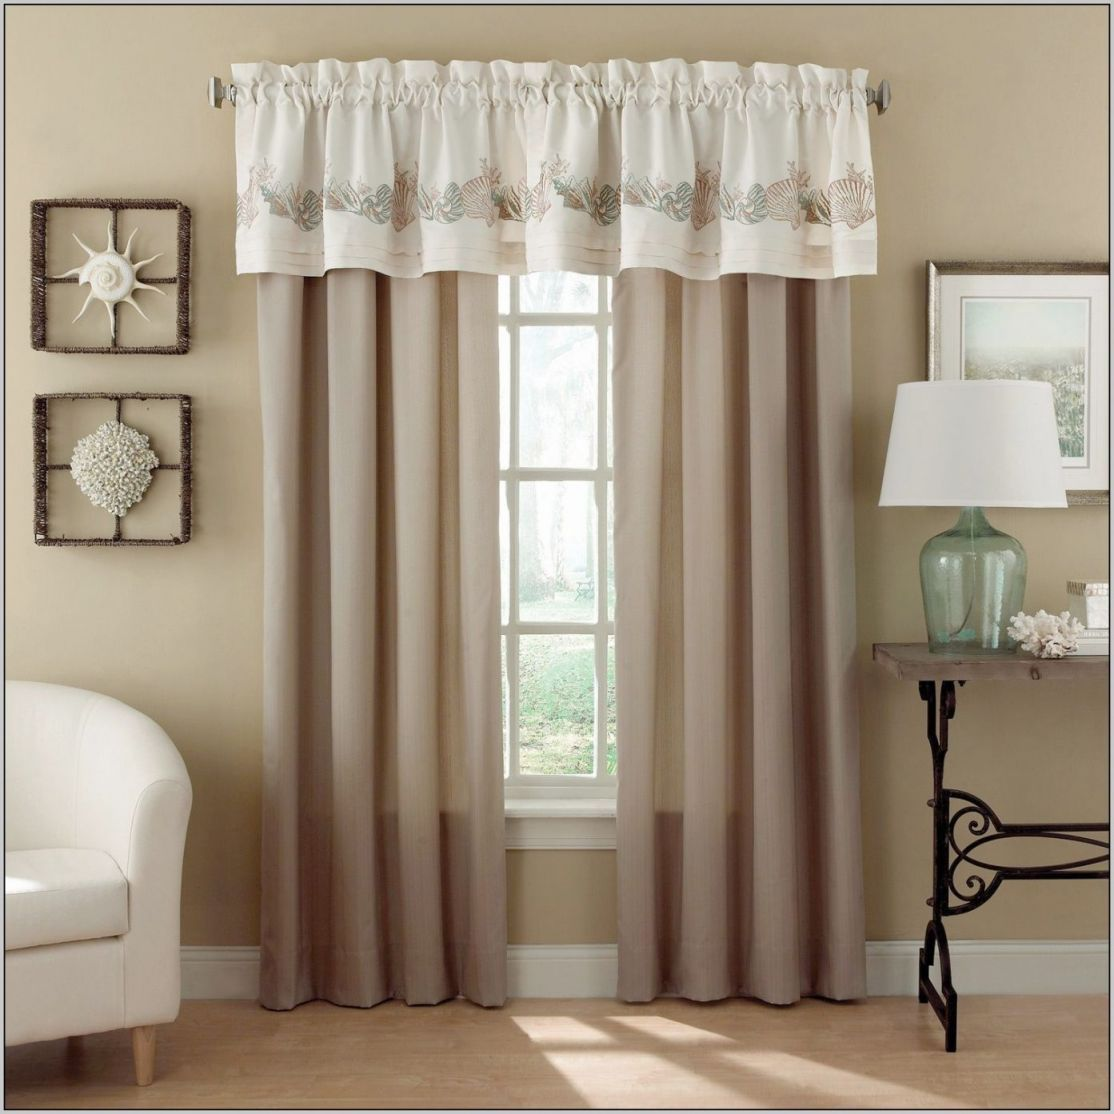 Lovely Bed Bath And Beyond Valances Bed Bath And Beyond Bath